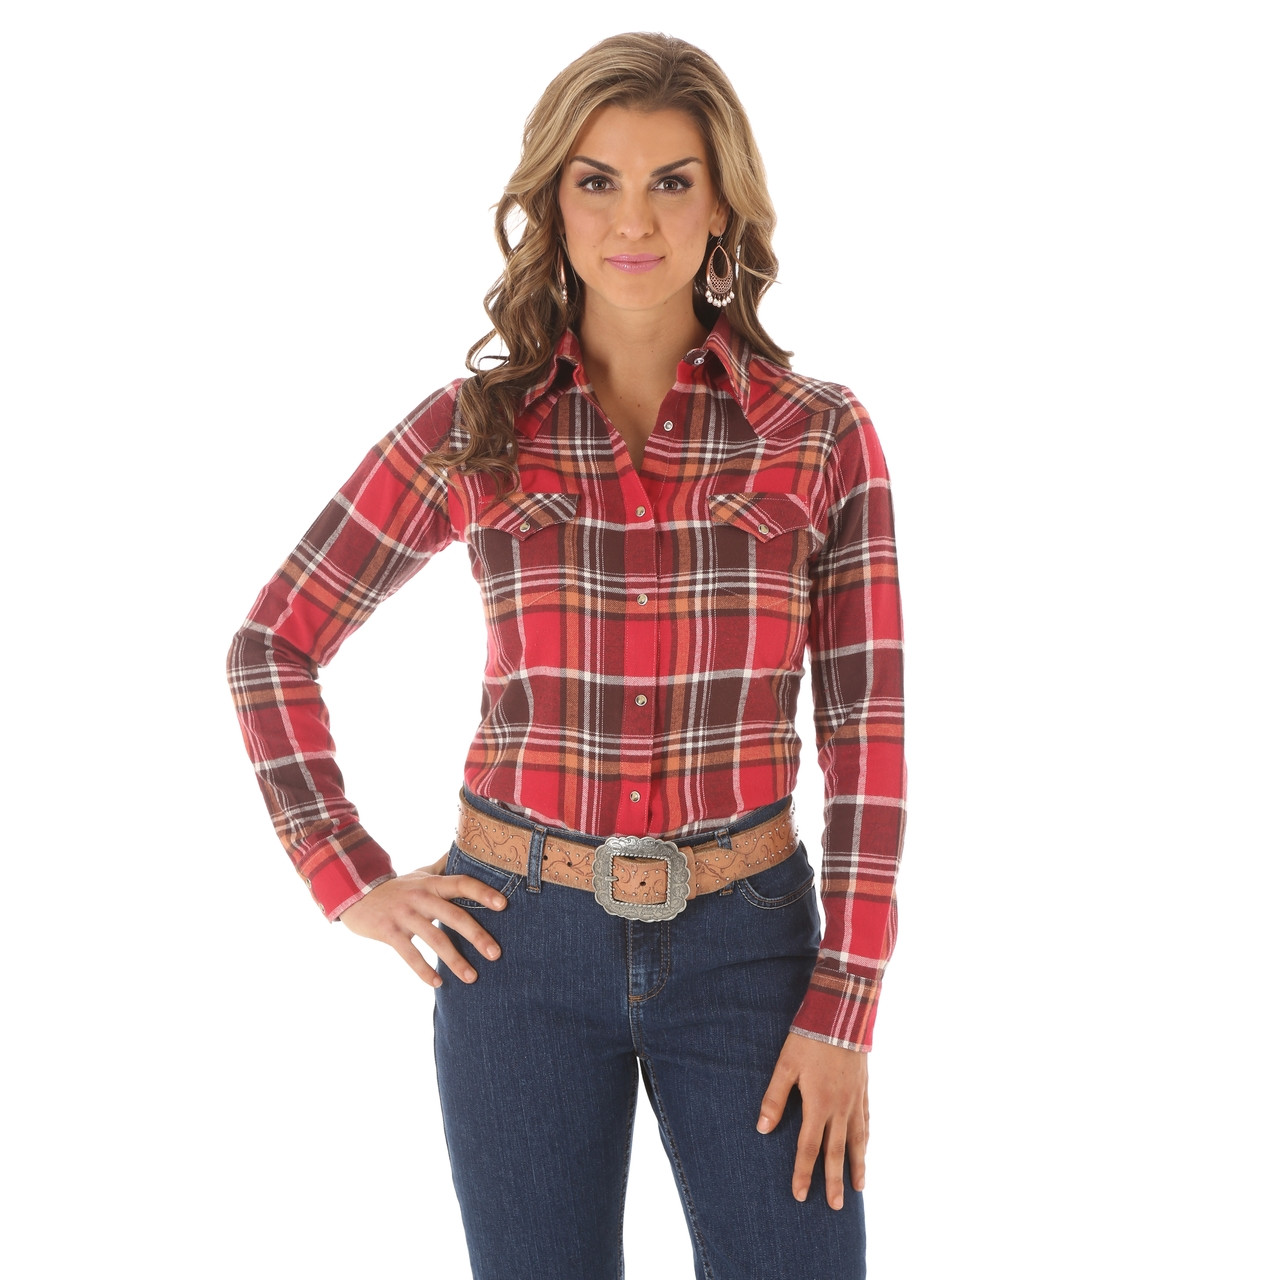 09d6f9af Women's Wrangler Red Brown Plaid Flannel Shirt - Herbert's Boots and  Western Wear